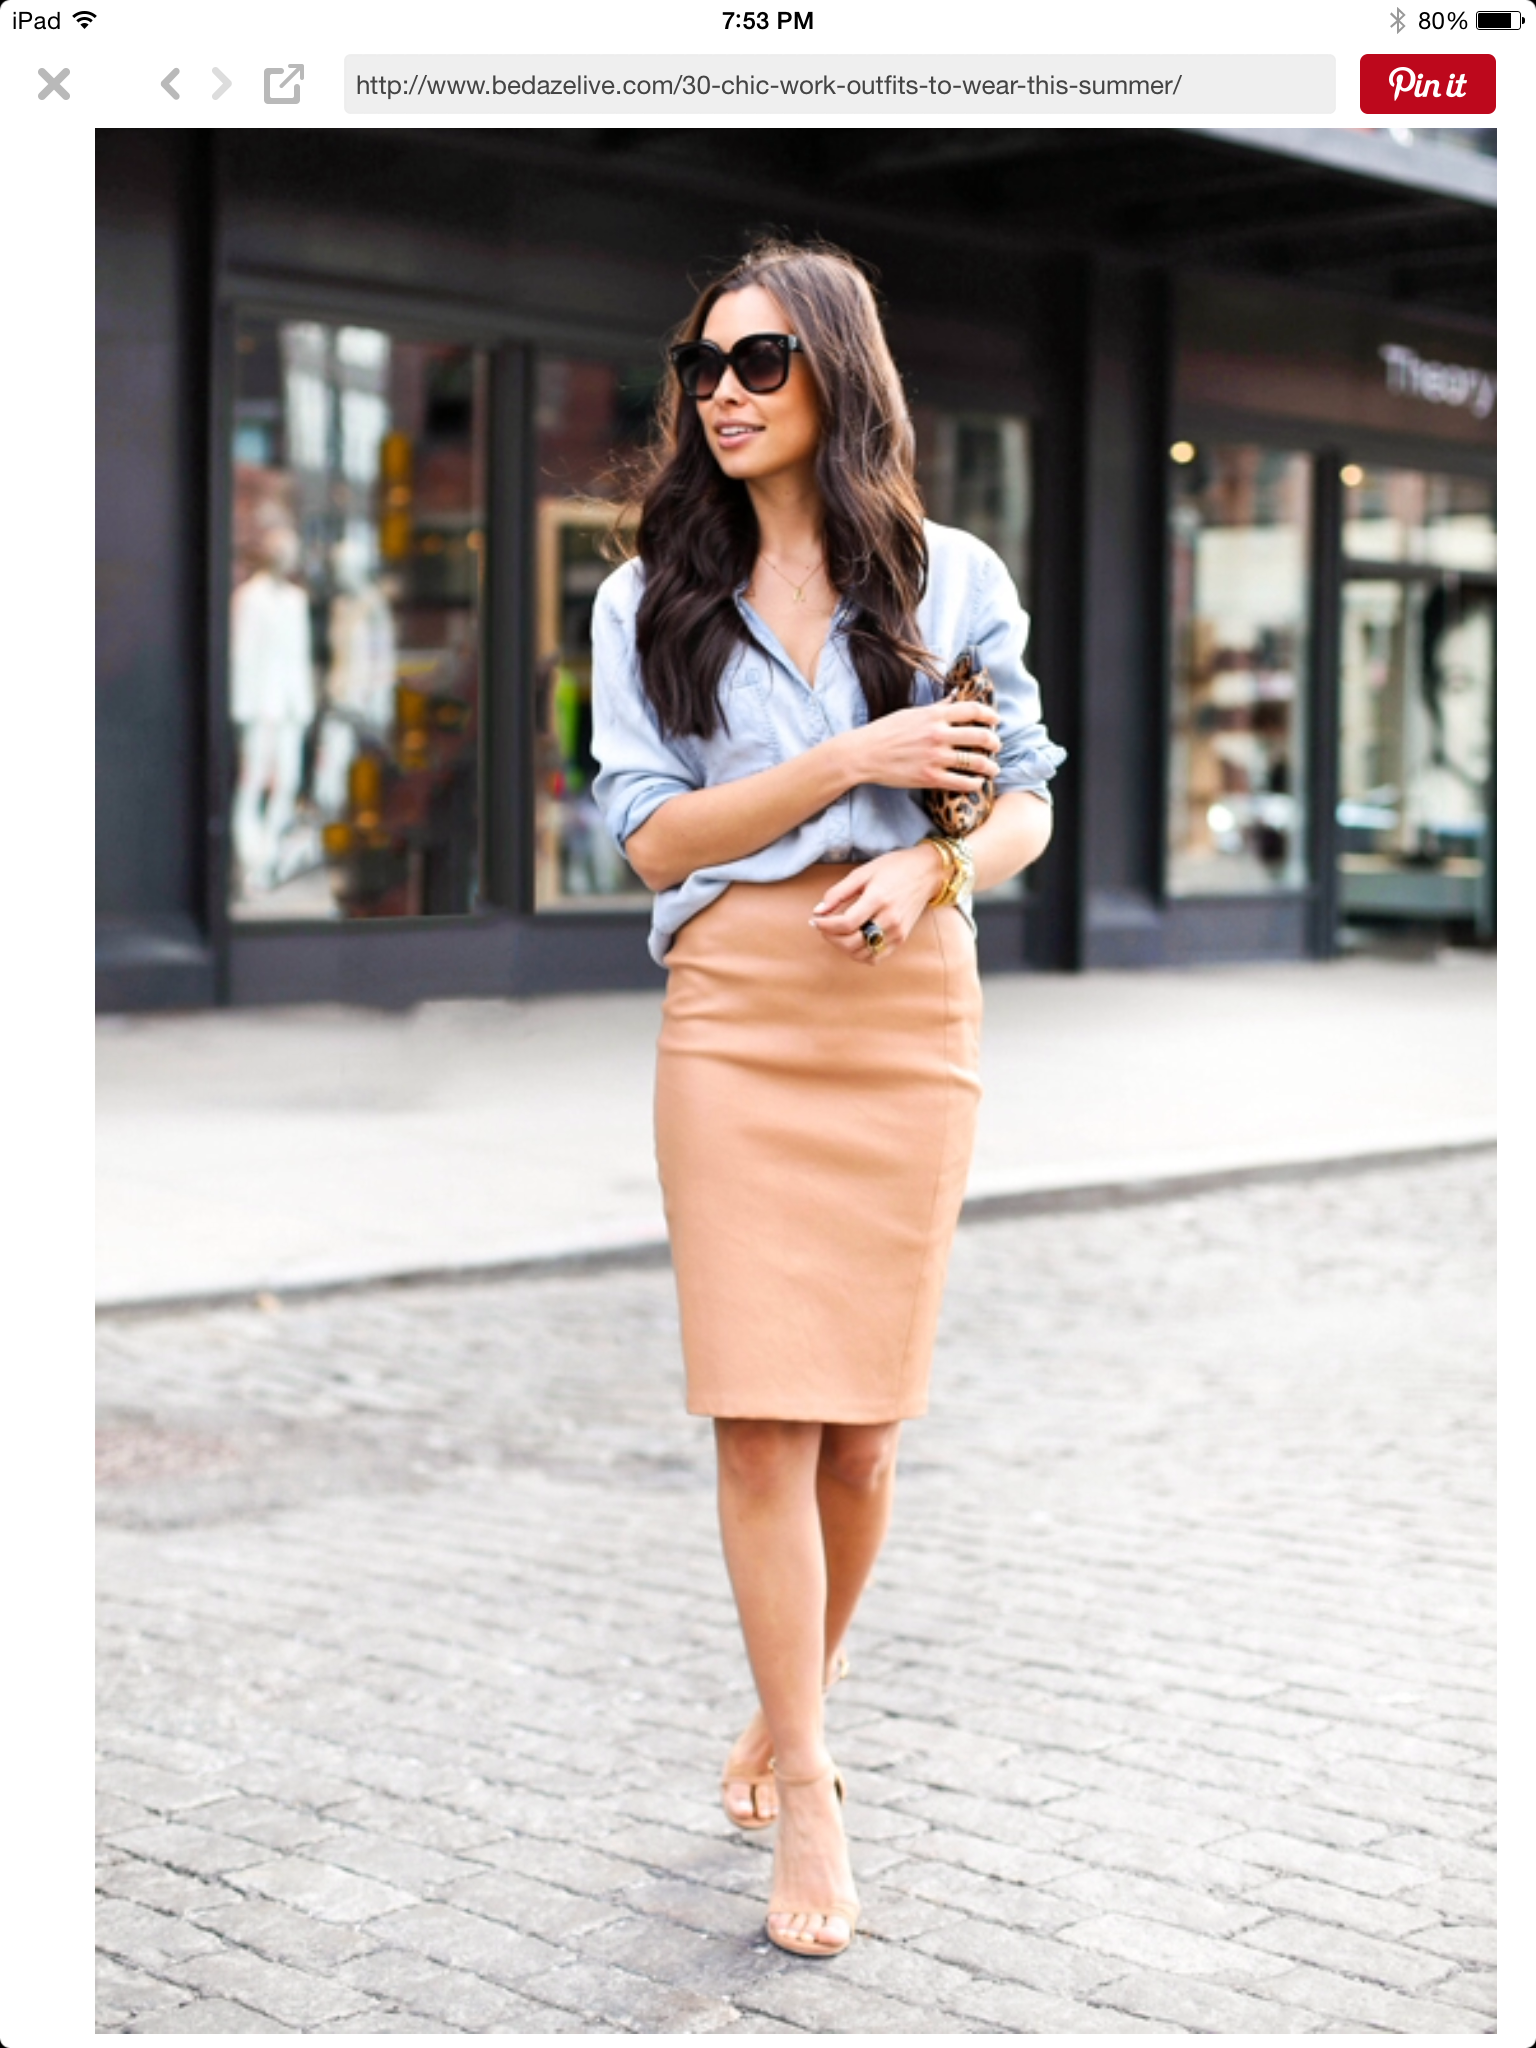 Denim Button Up Camel Colored Pencil Skirt